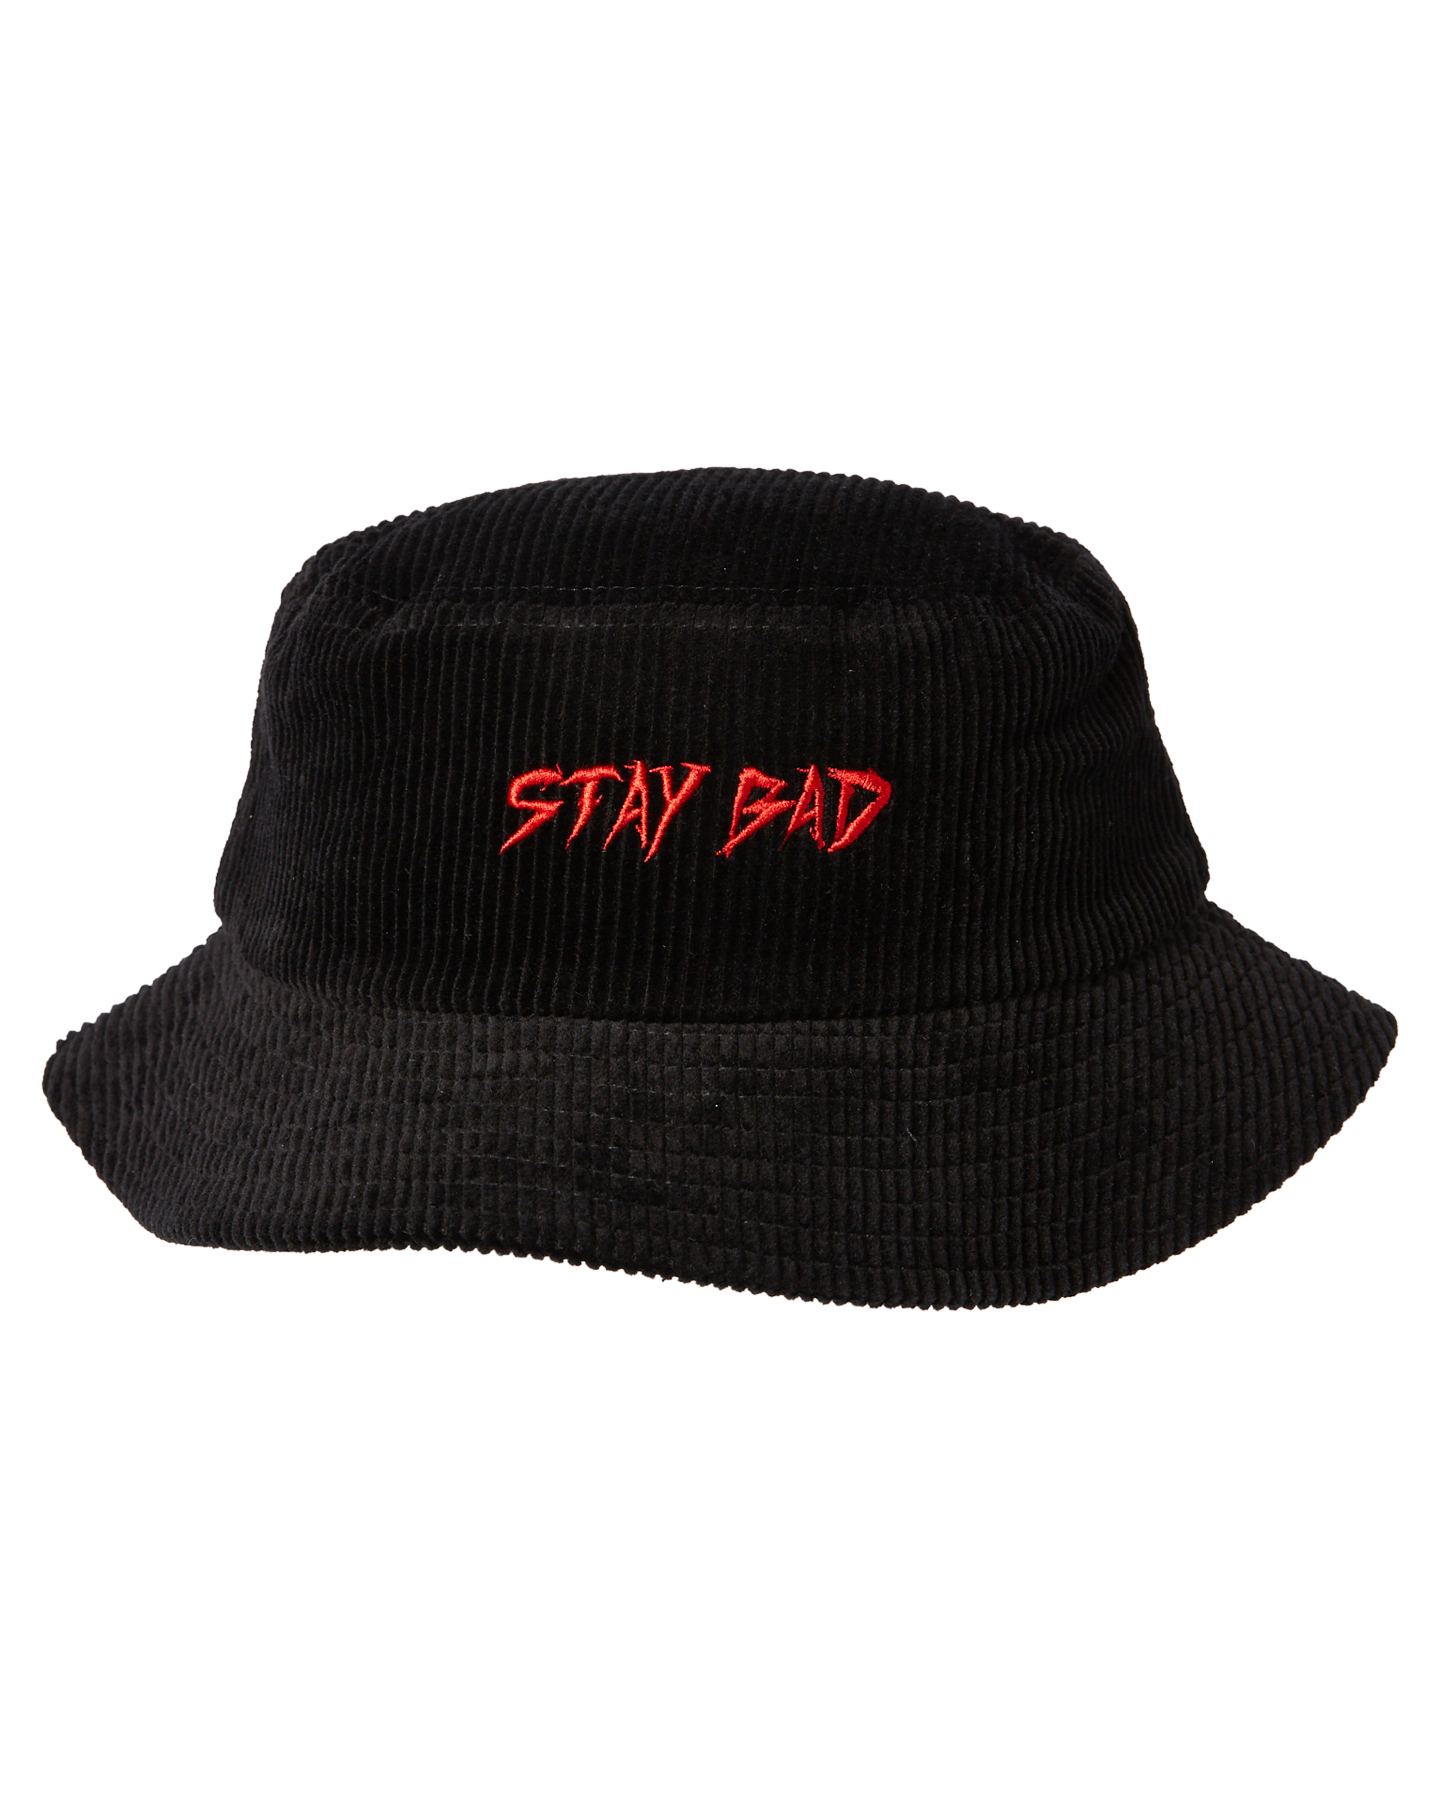 Billy Bones Club Stay Bad Corduroy Bucket Hat Black